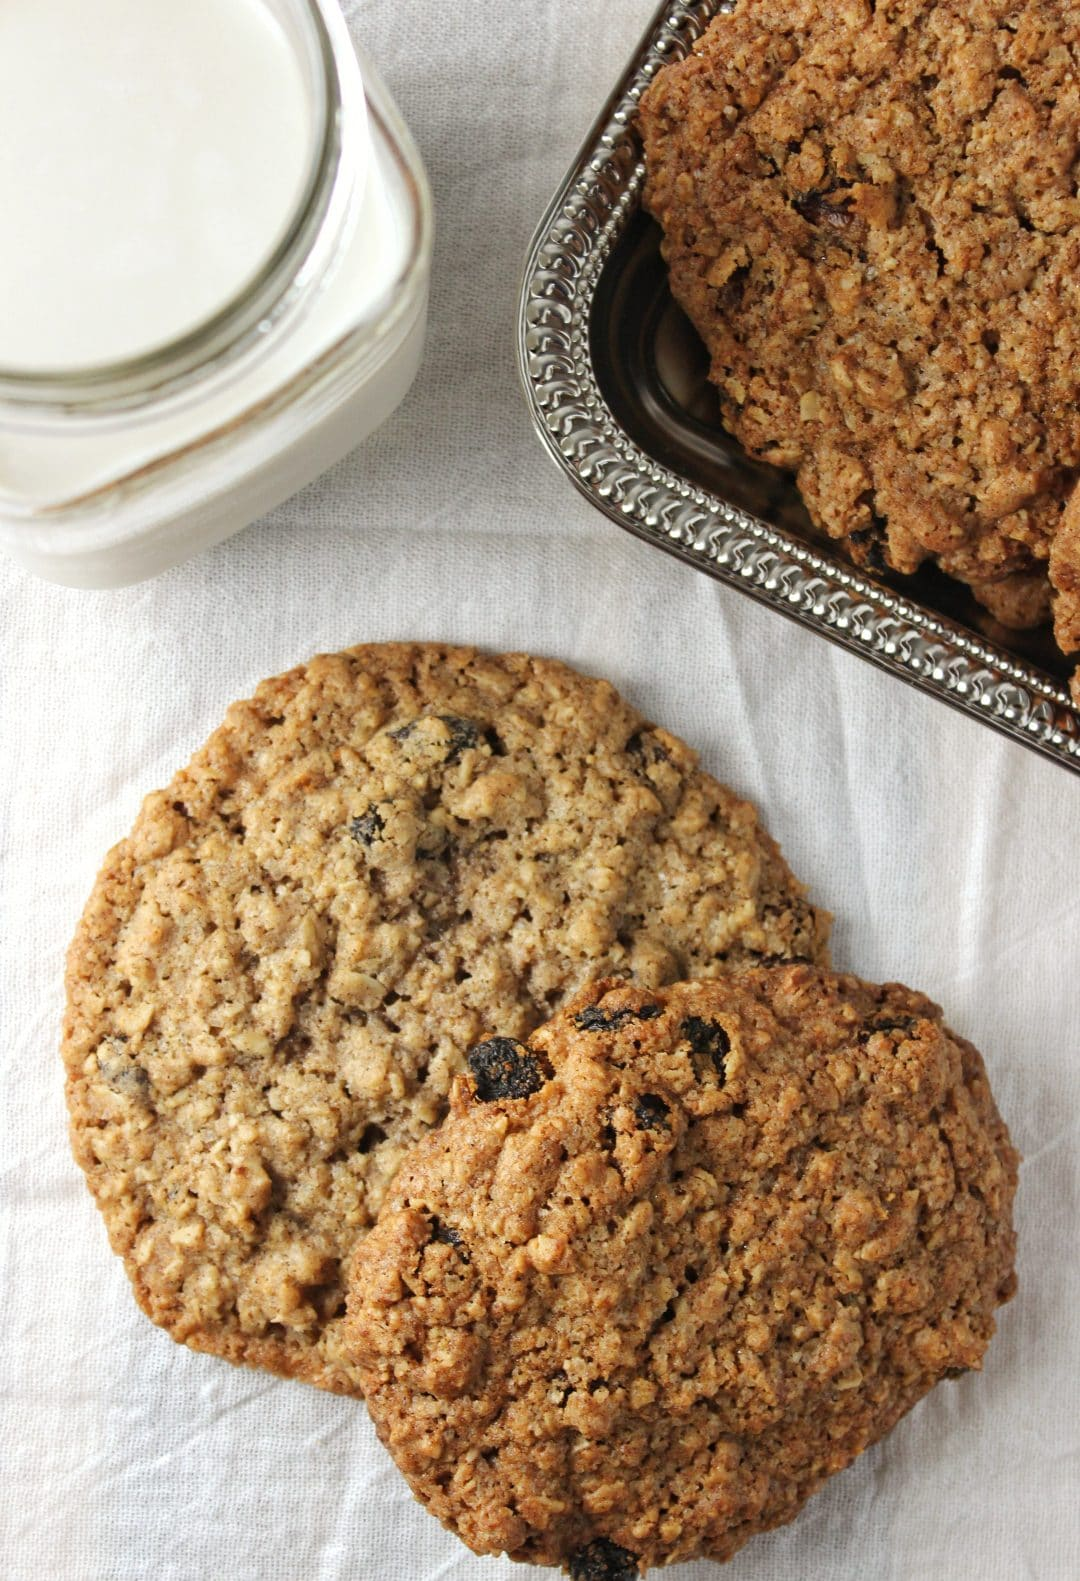 Oatmeal Raisin Cookies - These easy to make cookies are the perfect blend of sweetness, oatmeal, and tart raisins. Give them a try! simplylakita.com #cookies #oatmeal